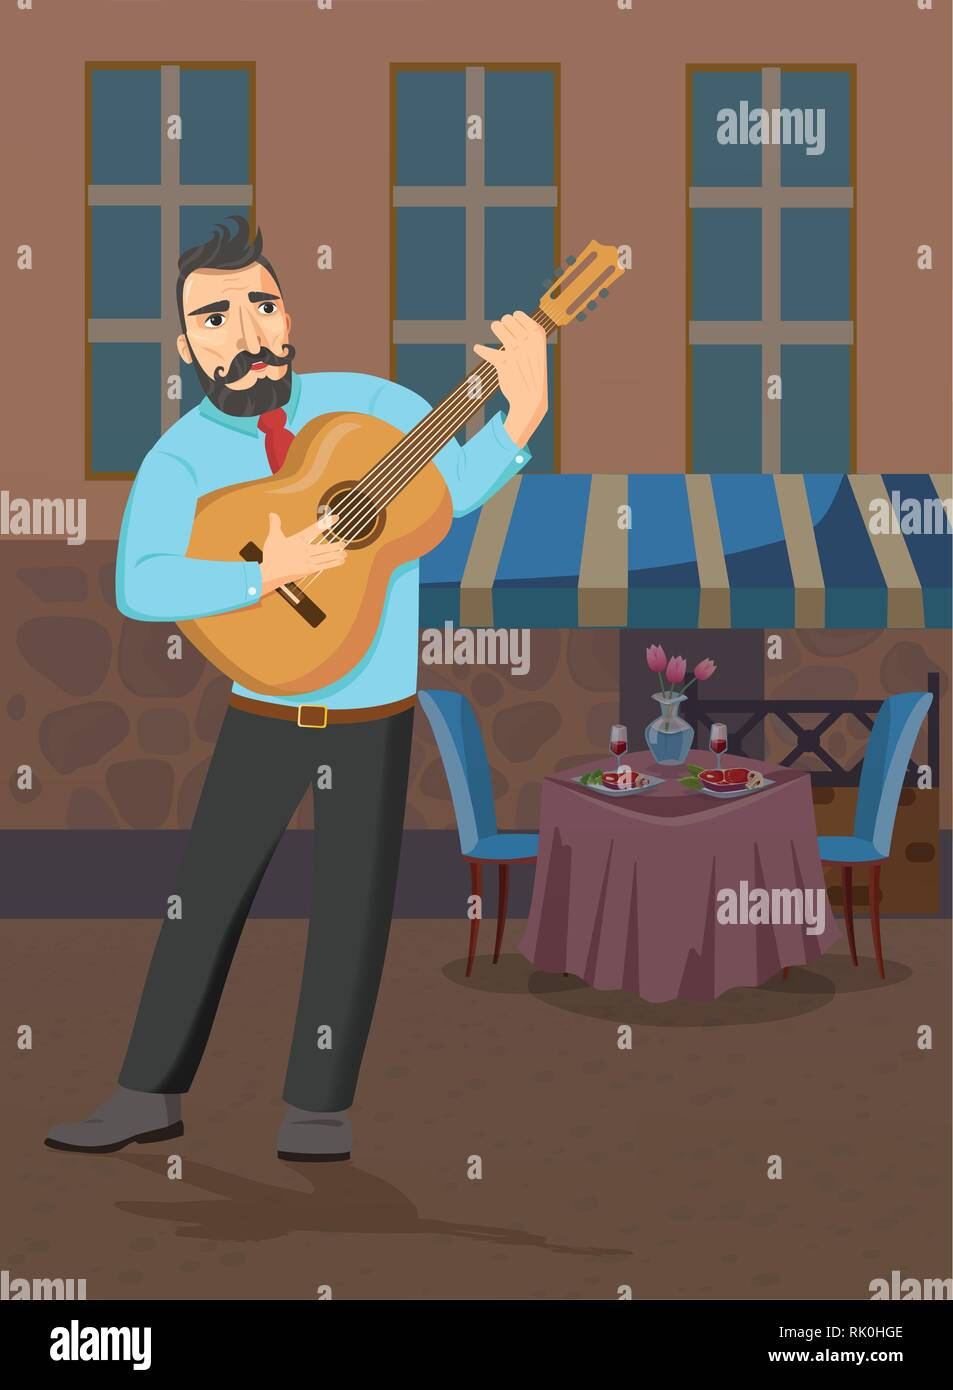 Man with guitar stands near the restaurant and sings. - Stock Vector